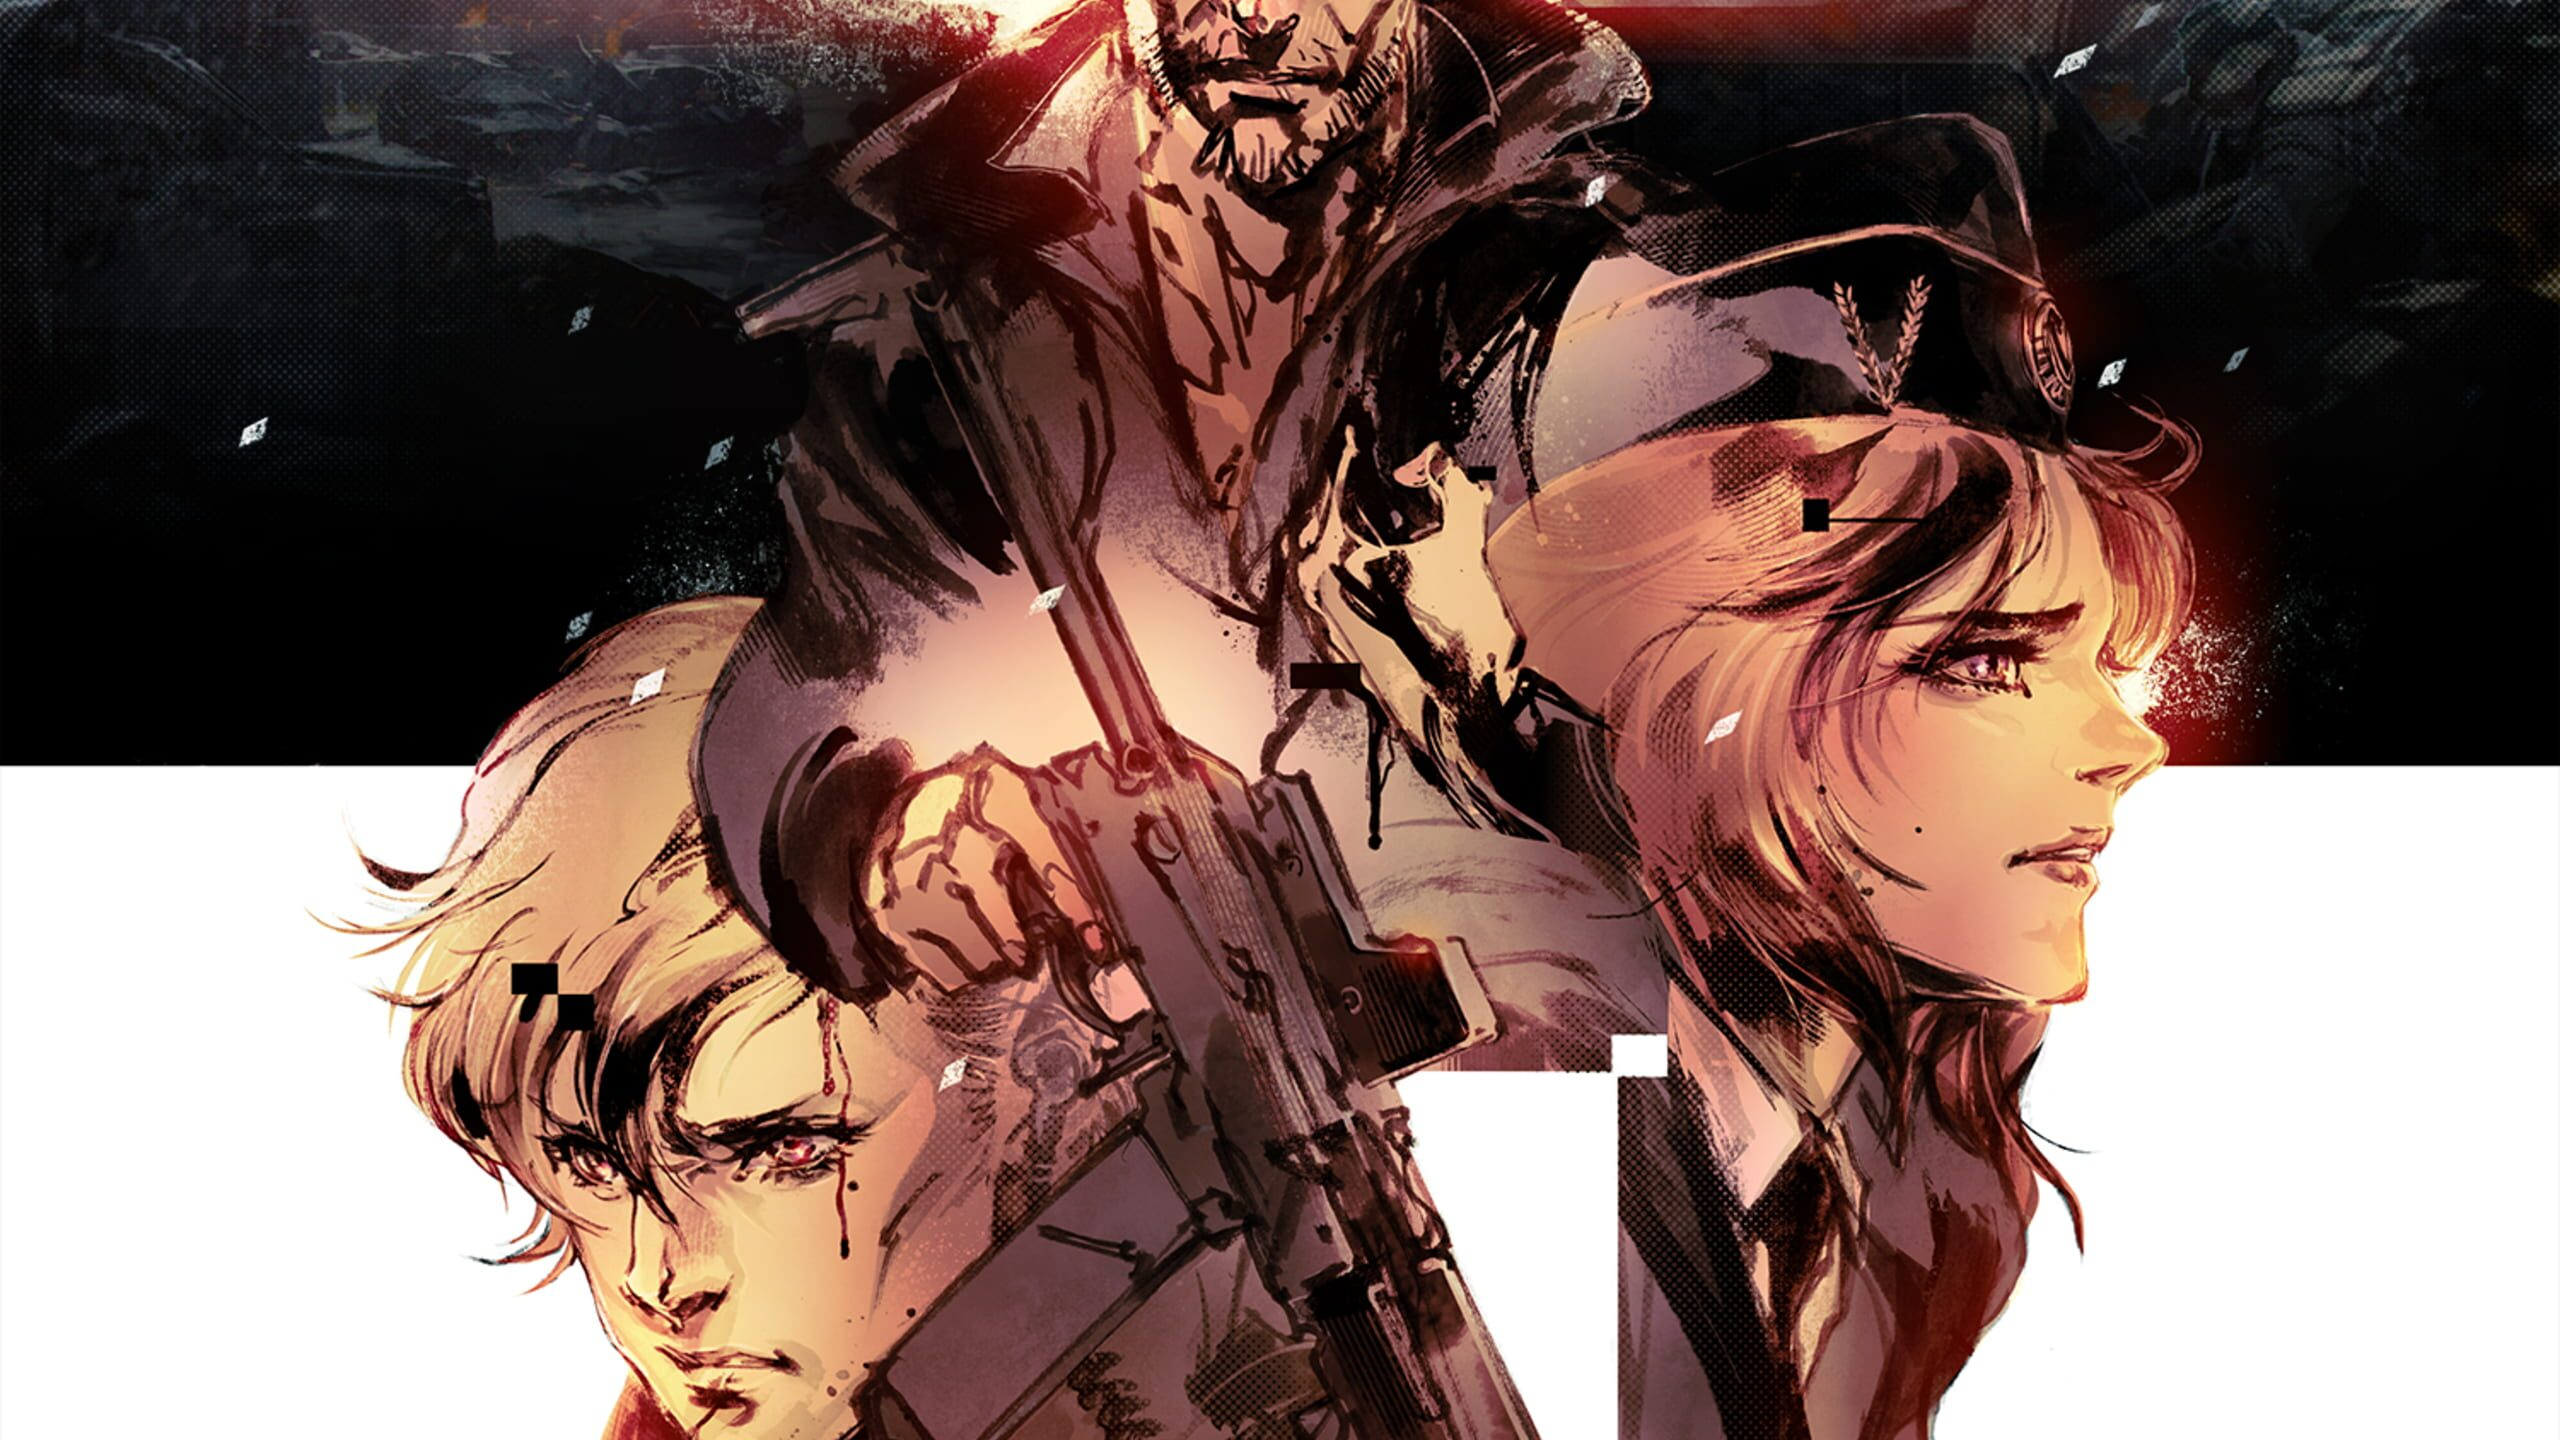 game cover art for Left Alive